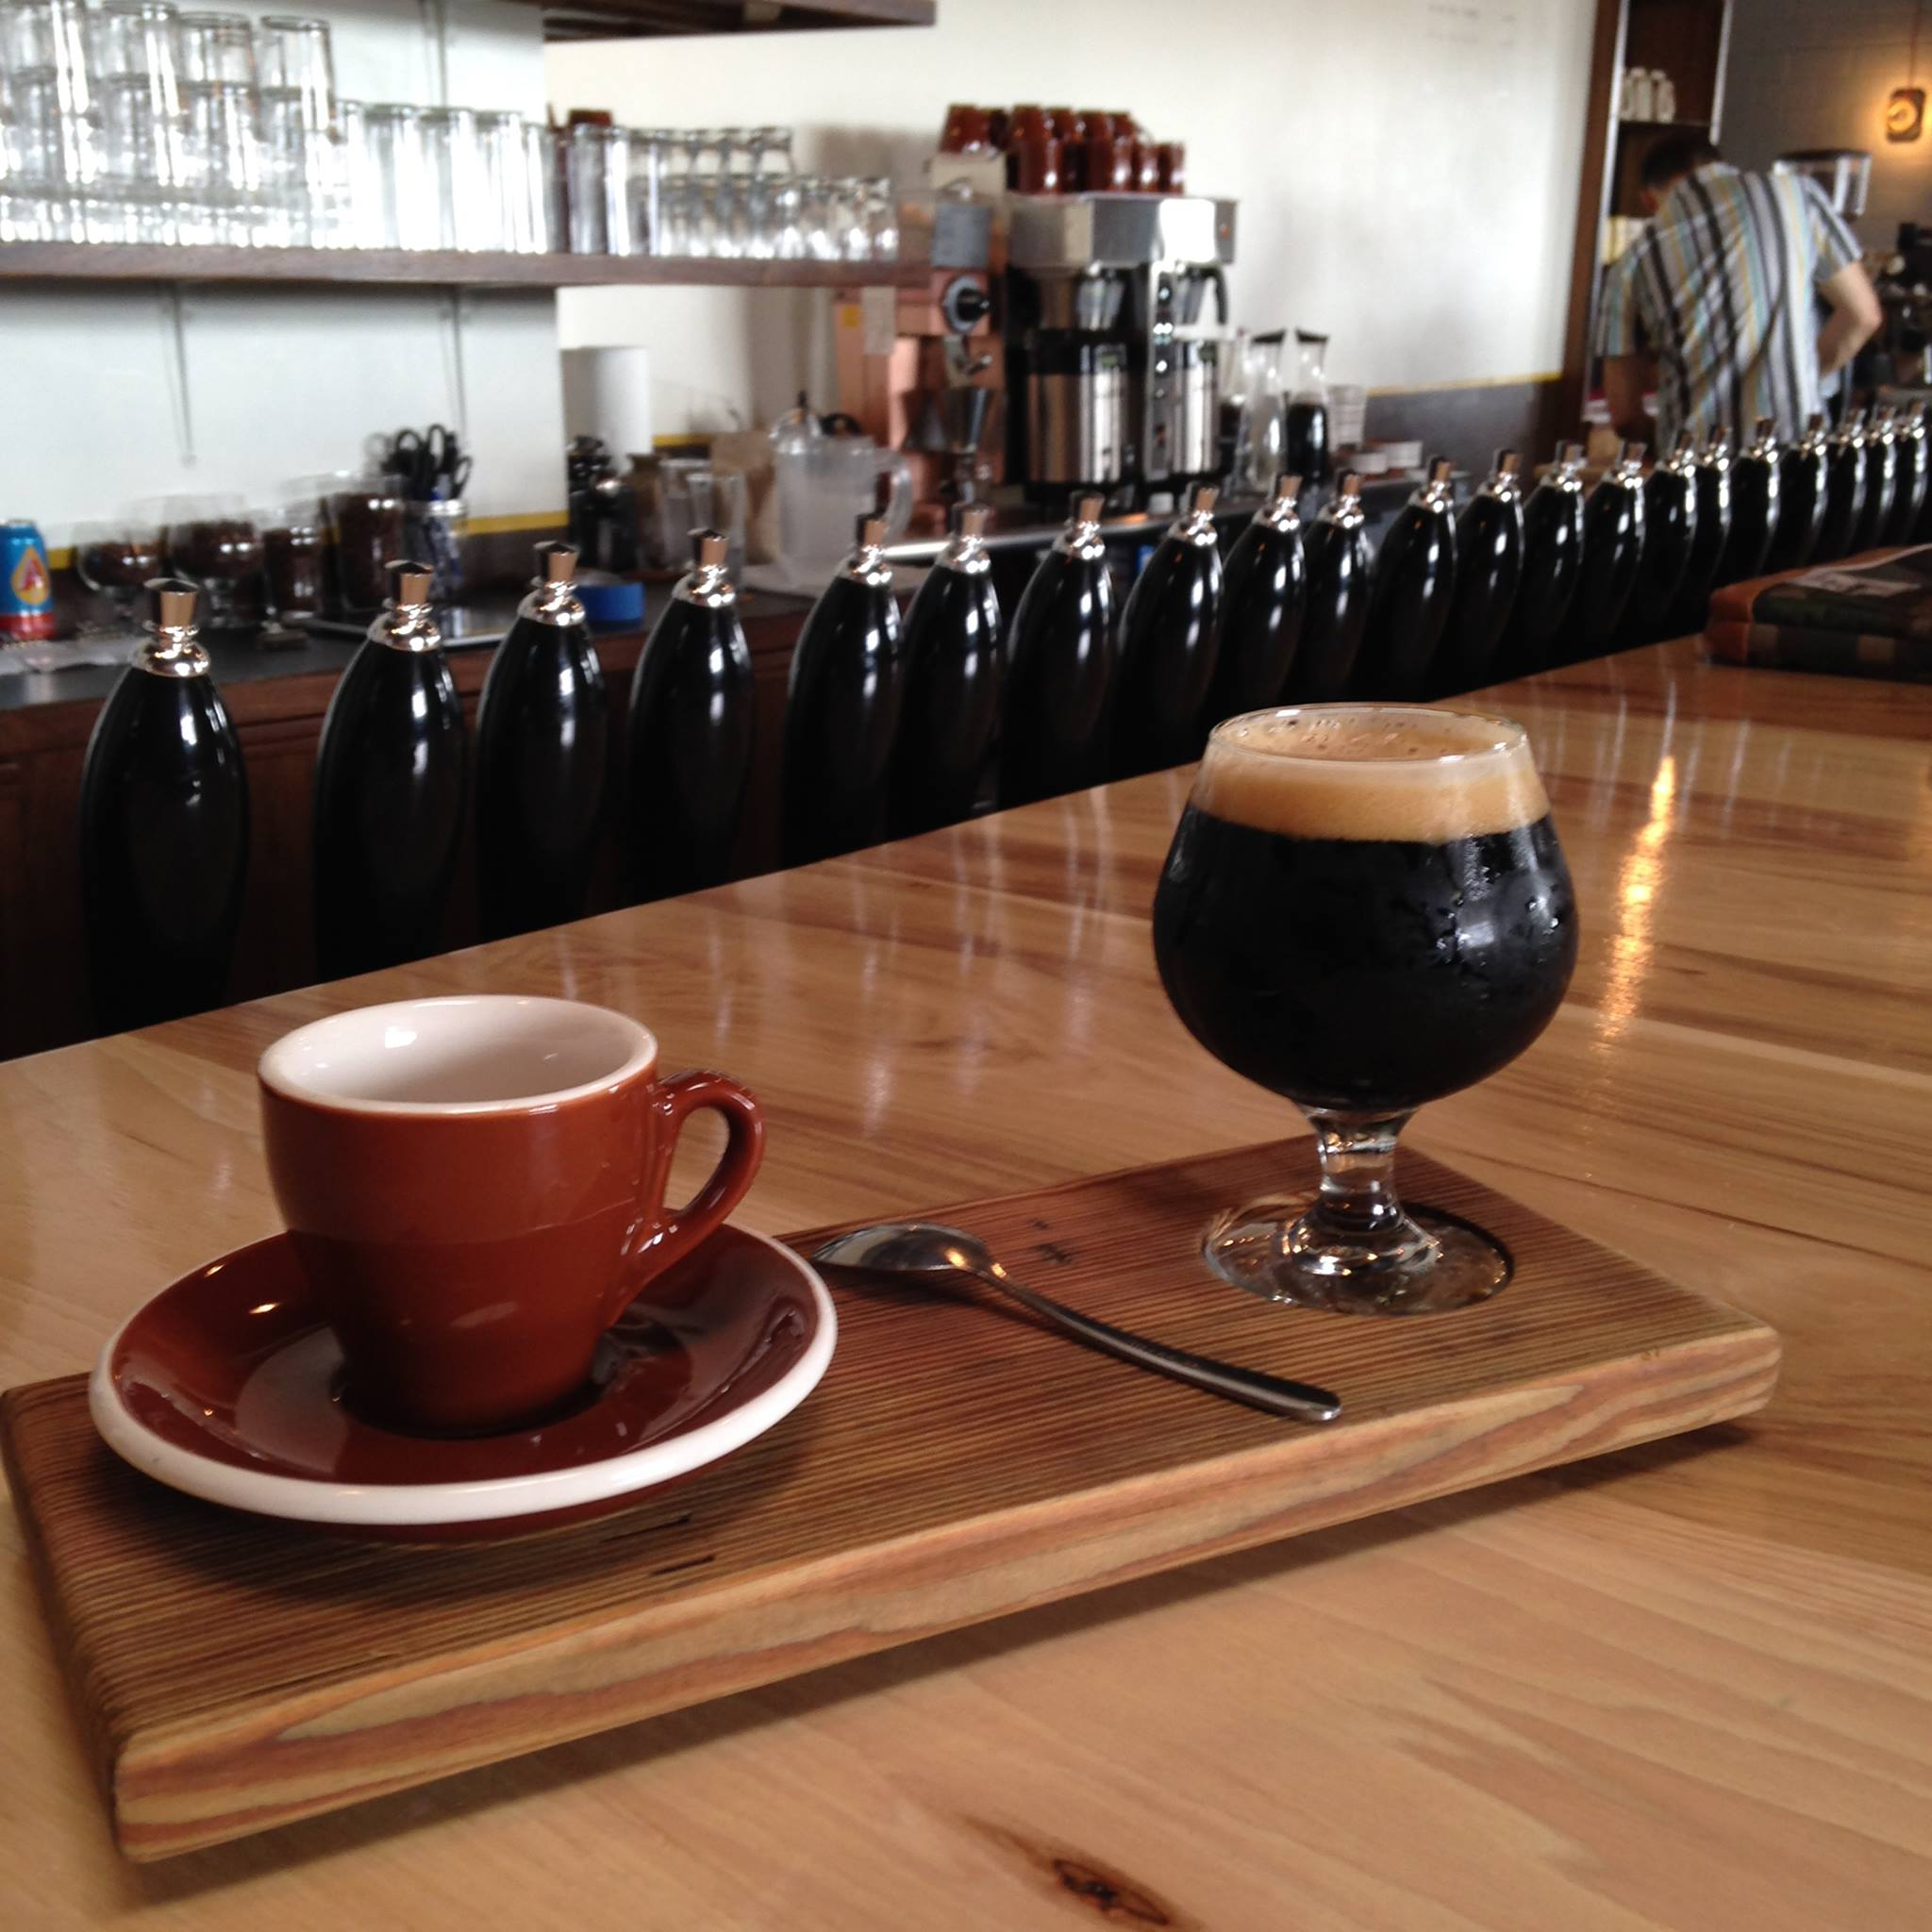 Find Coffee and Booze at These 10 Austin Cafes